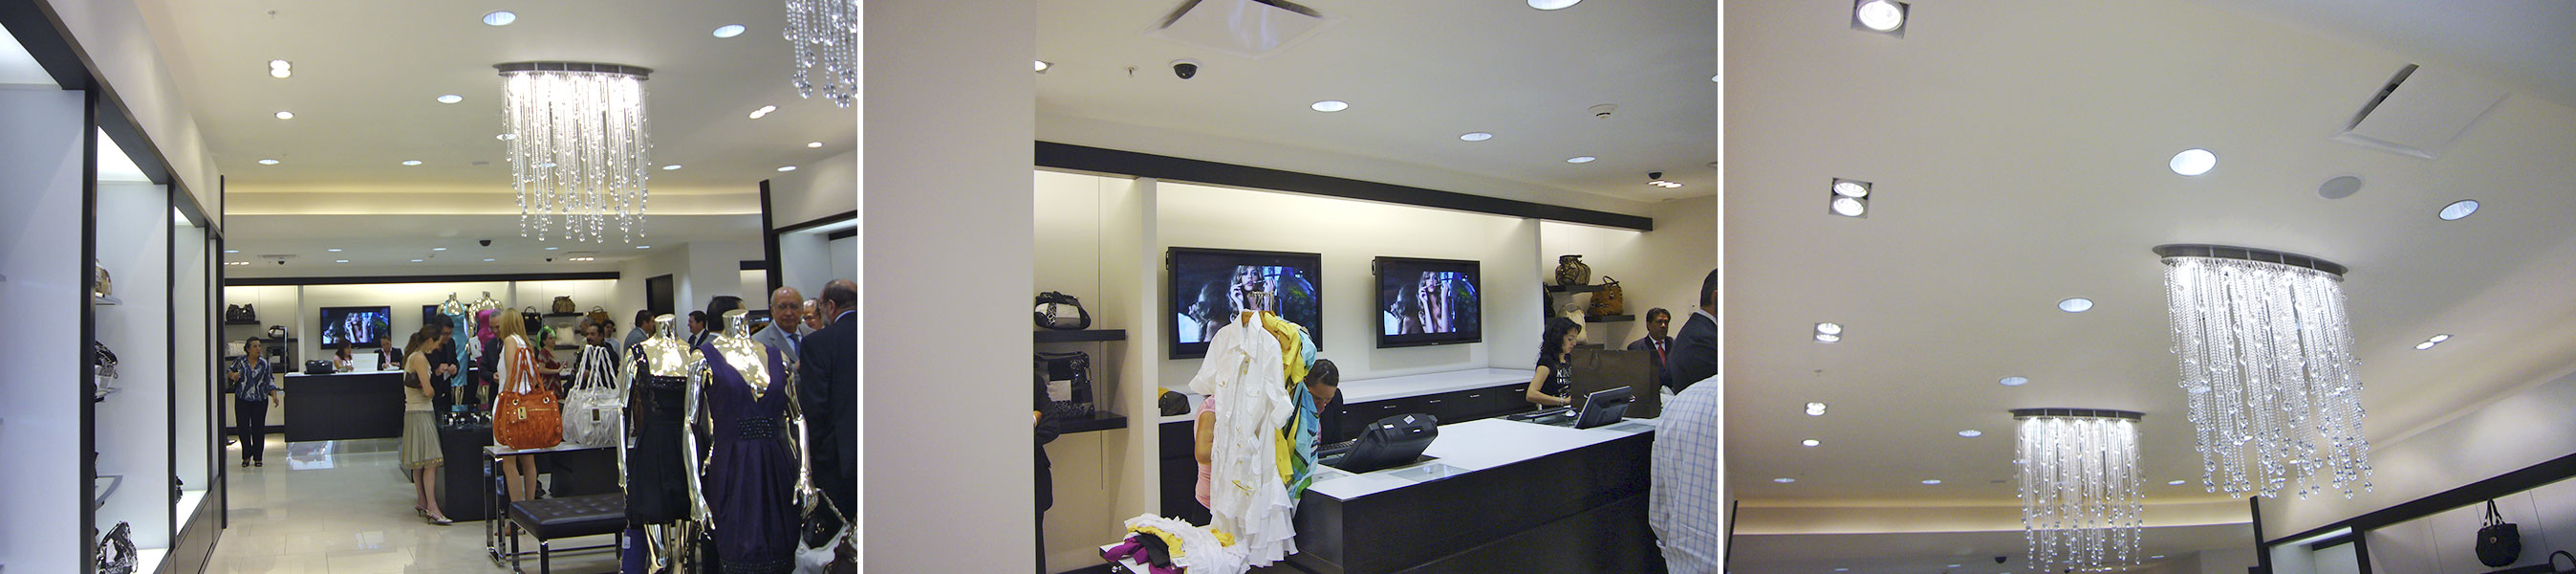 2008 – Boutique Polanco